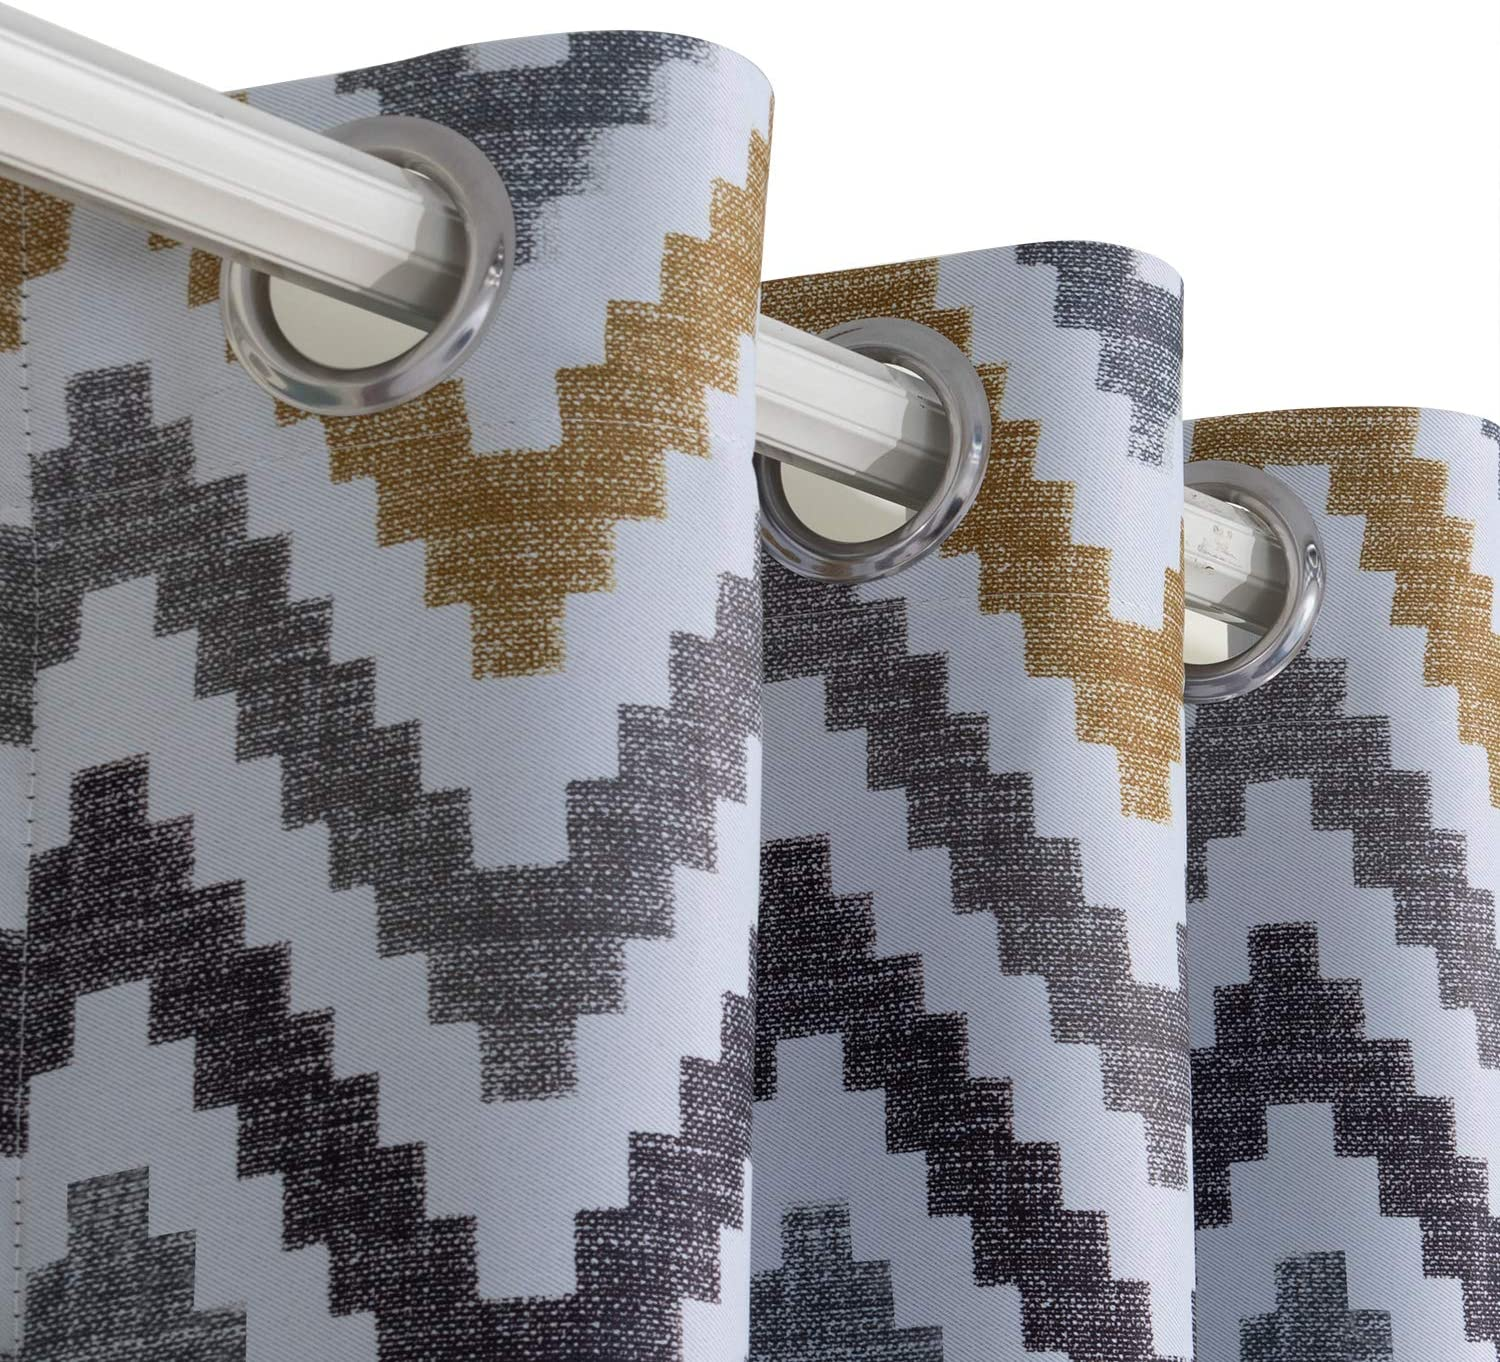 BGment Printed Blackout Curtains for Bedroom with Multicoloured Wave Patterns Grommet Thermal Insulated Room Darkening Curtains for Living Room Set of 2 Panels 52 x 63 Inch, Brown